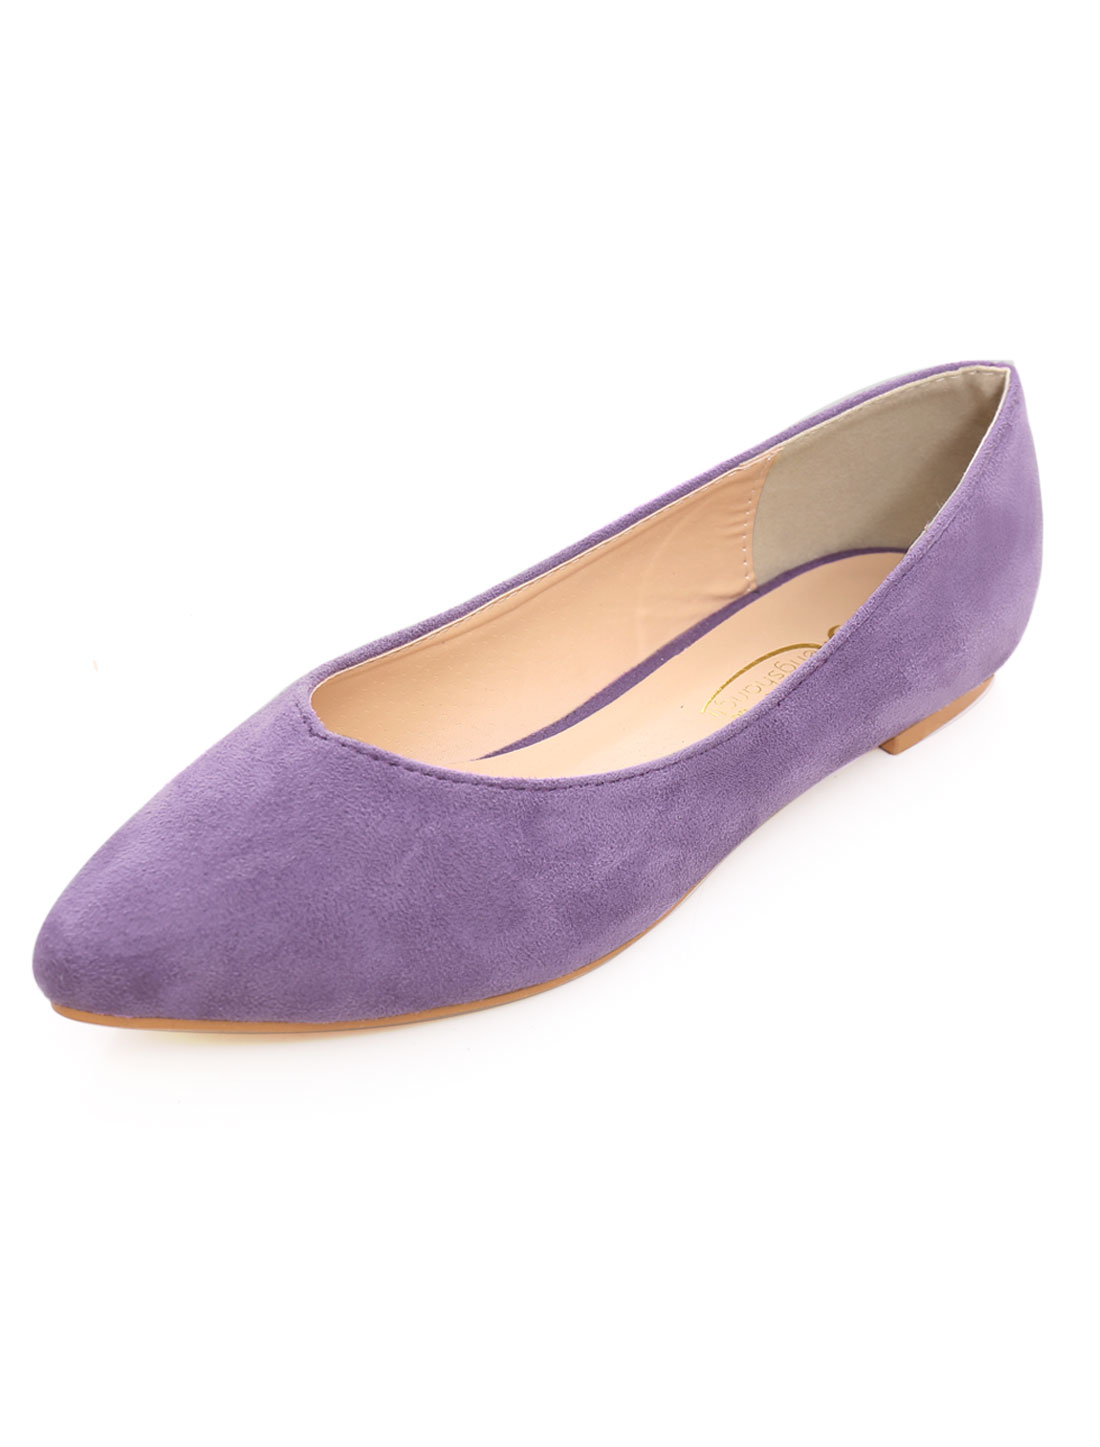 Lady Faux Suede V-Cut Vamp Pointed Toe Ballet Flat Shoes Purple US 10.5